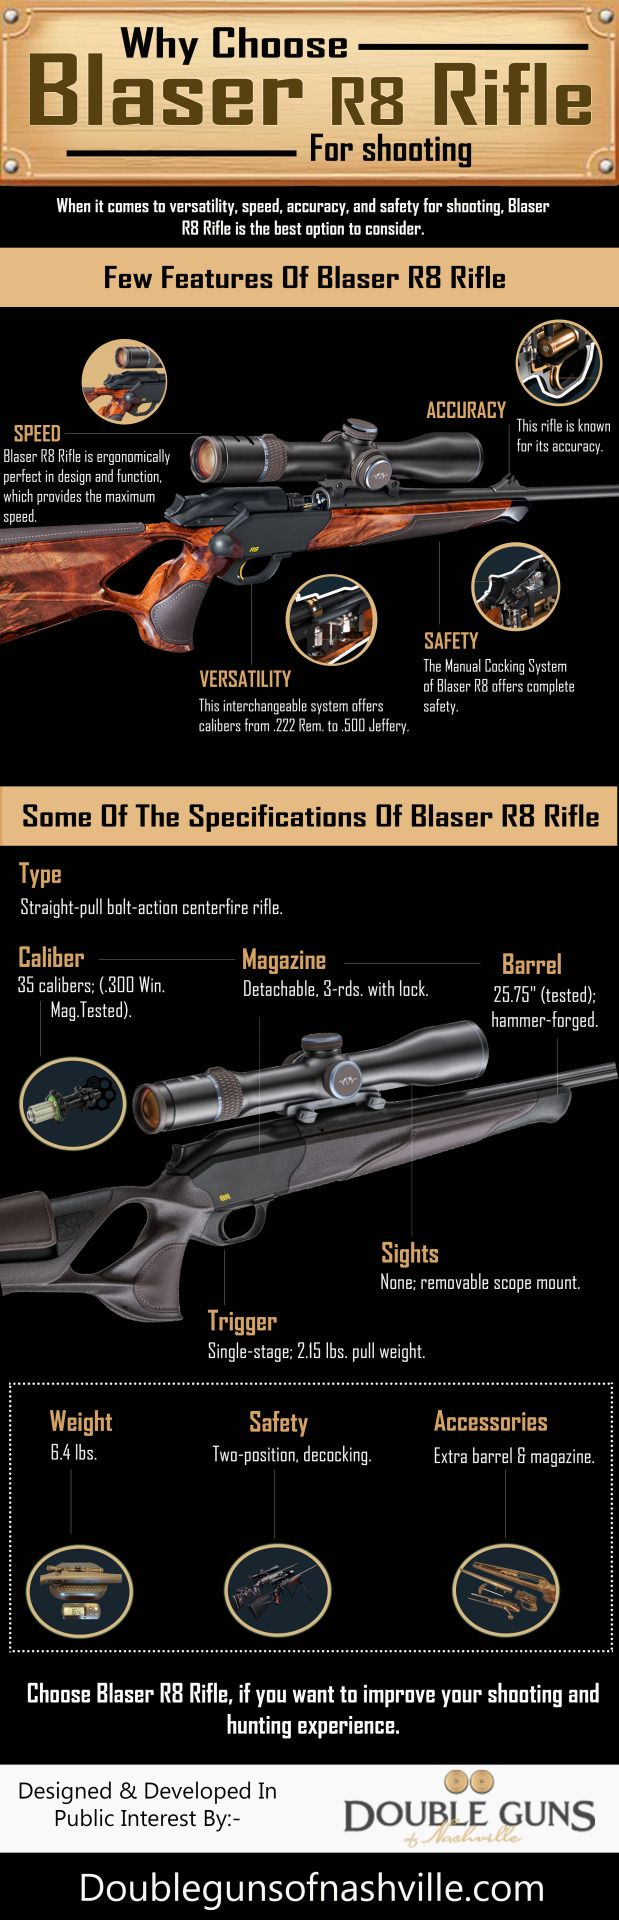 Why Choose Blaser R8 Rifle For Shooting